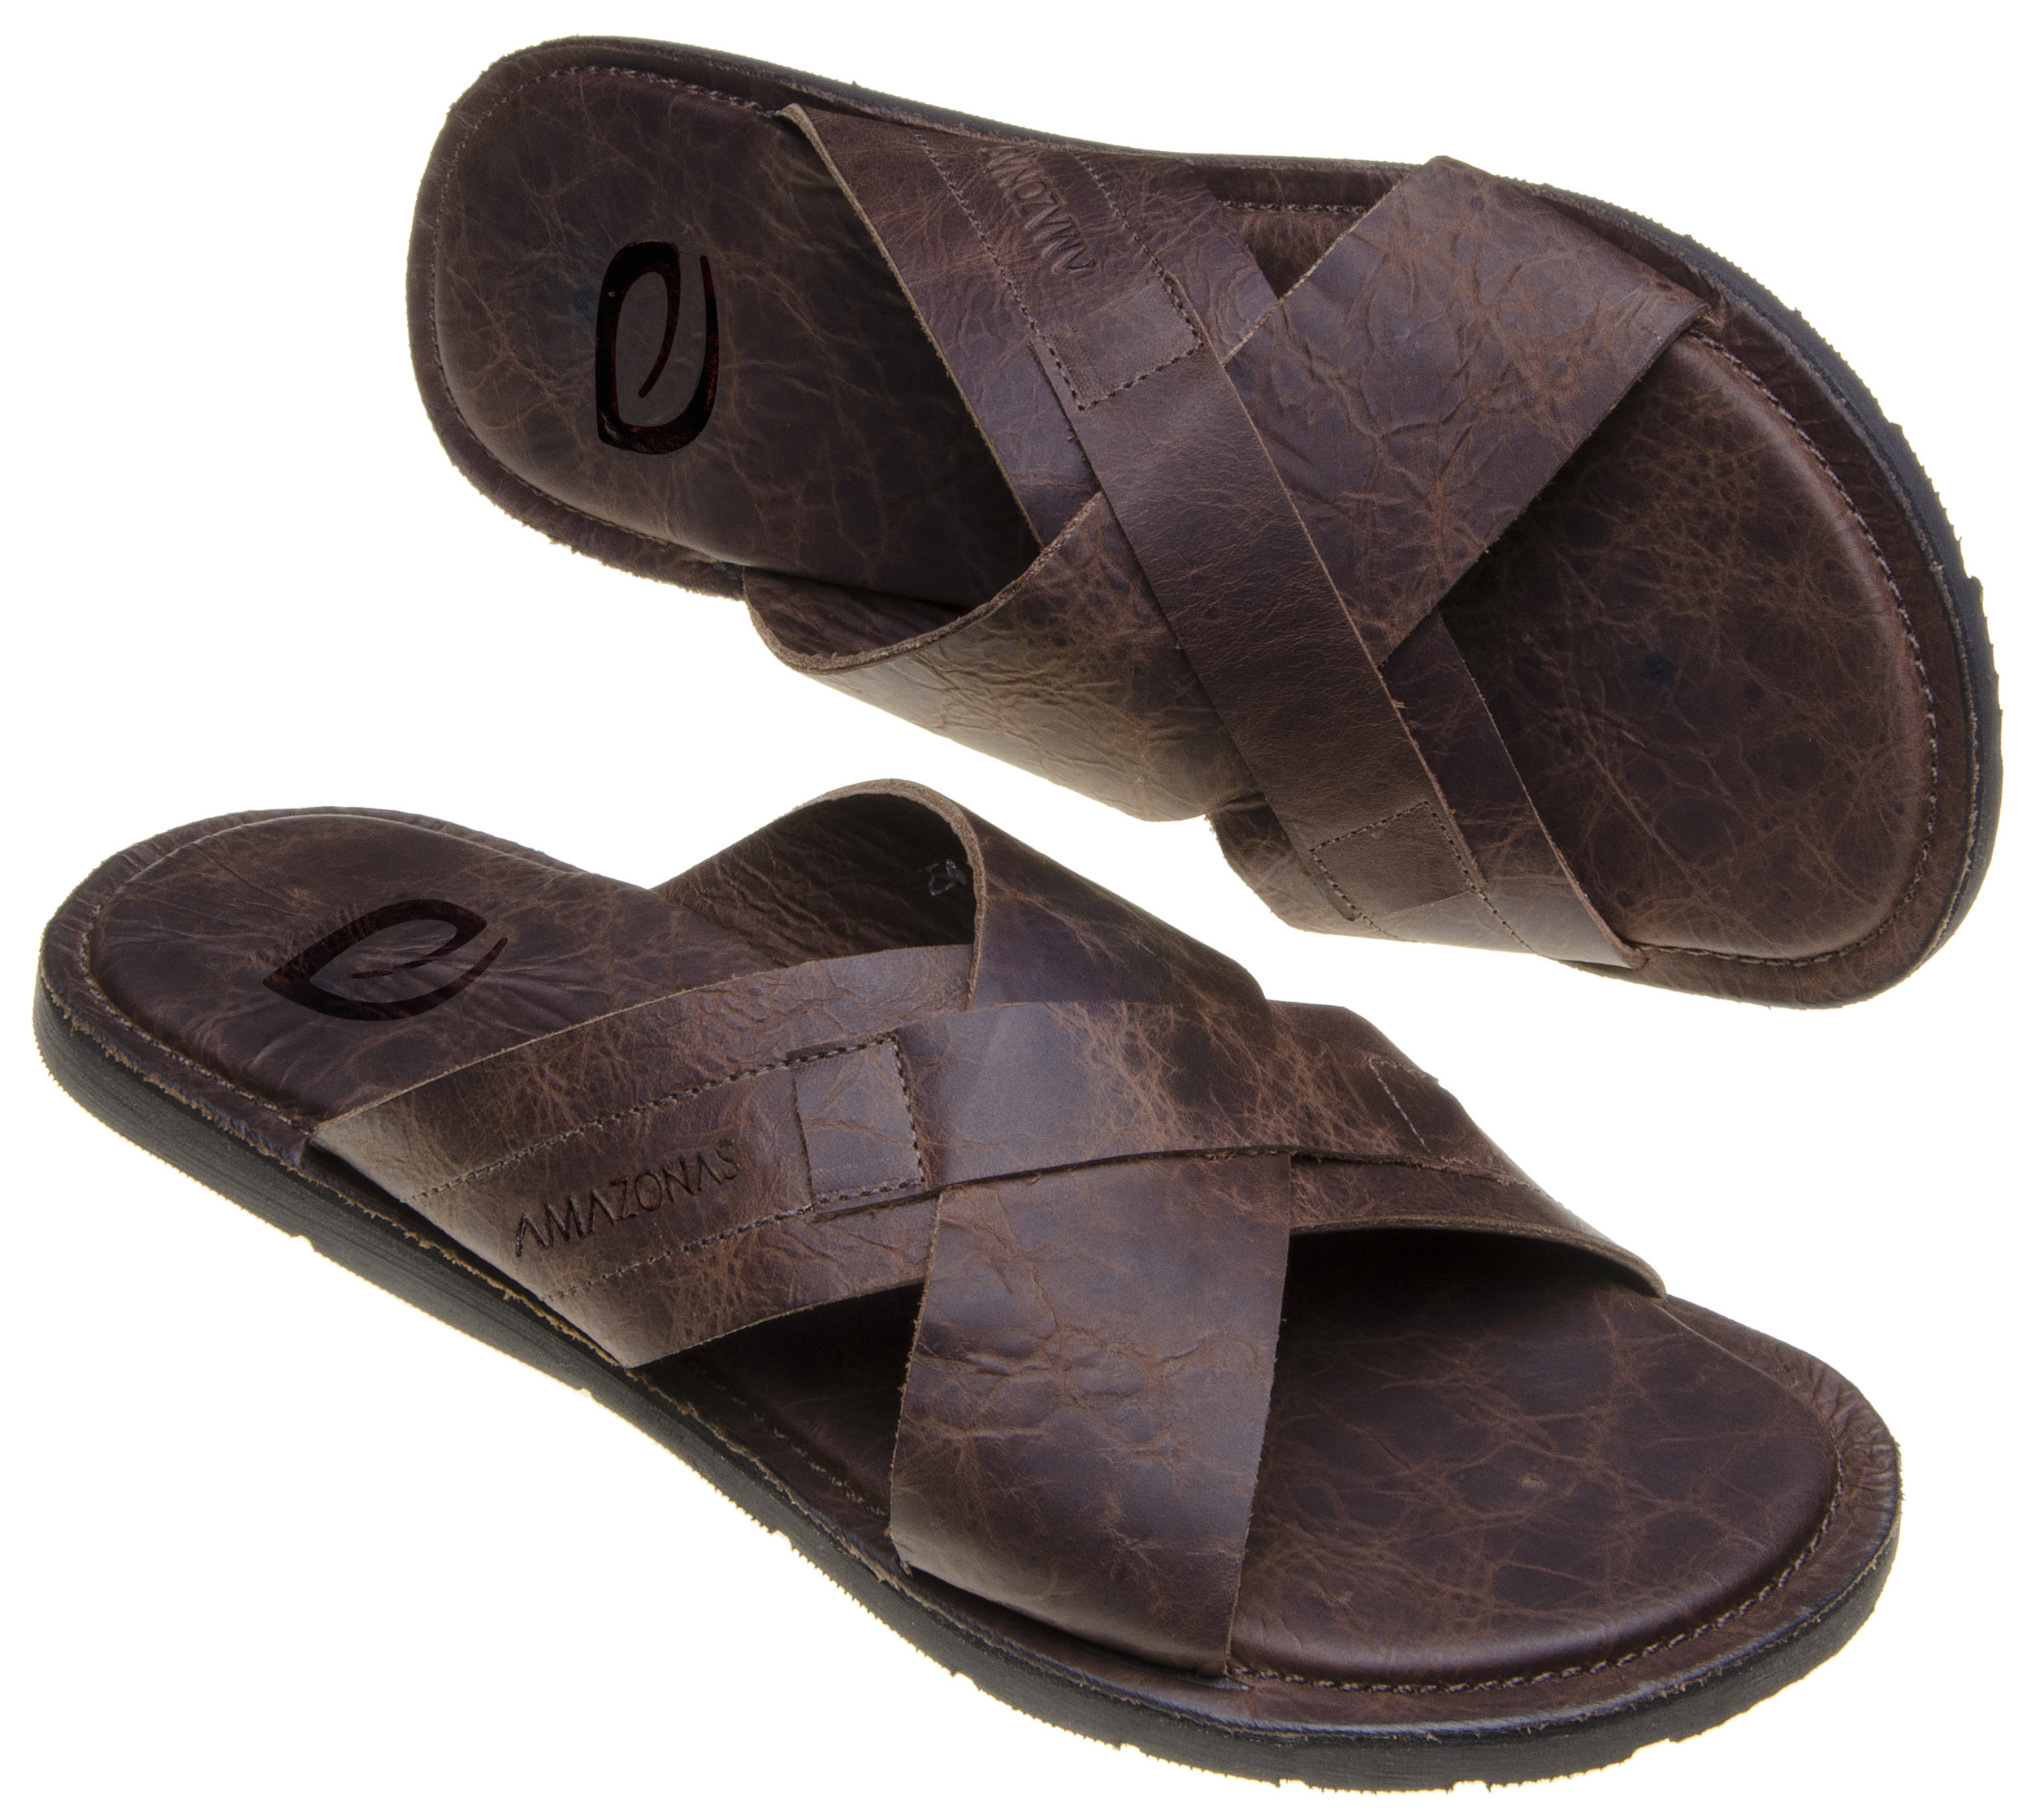 Men - Combine recycled rubber with leather to create comfort, support and style.